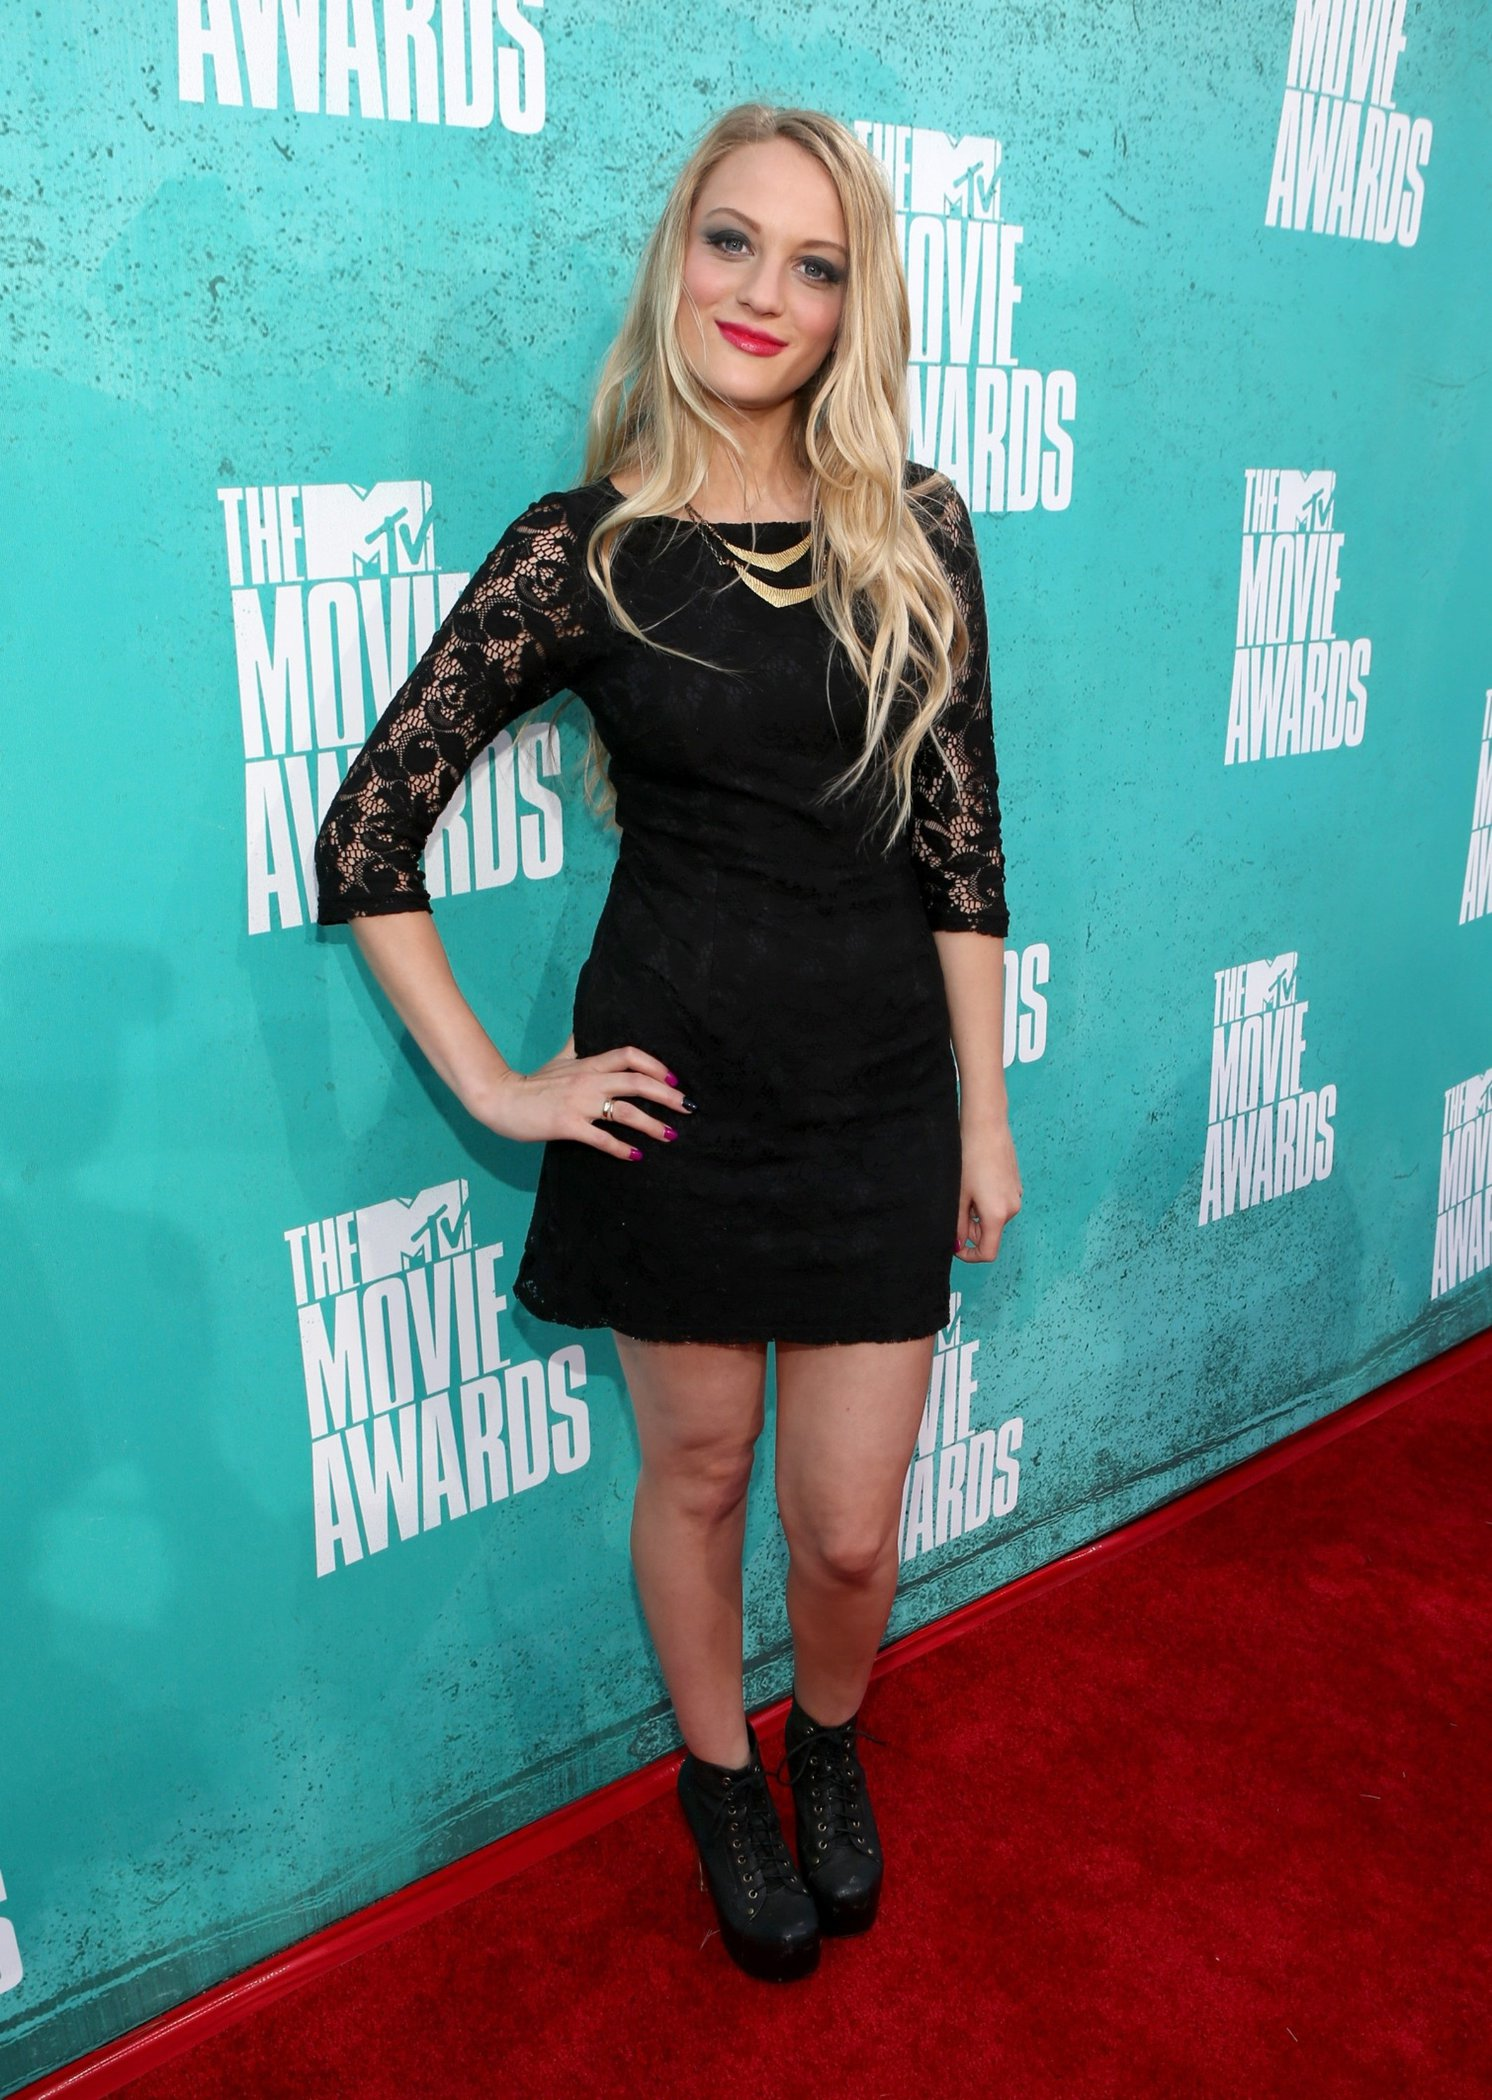 kirby bliss blanton tumblr